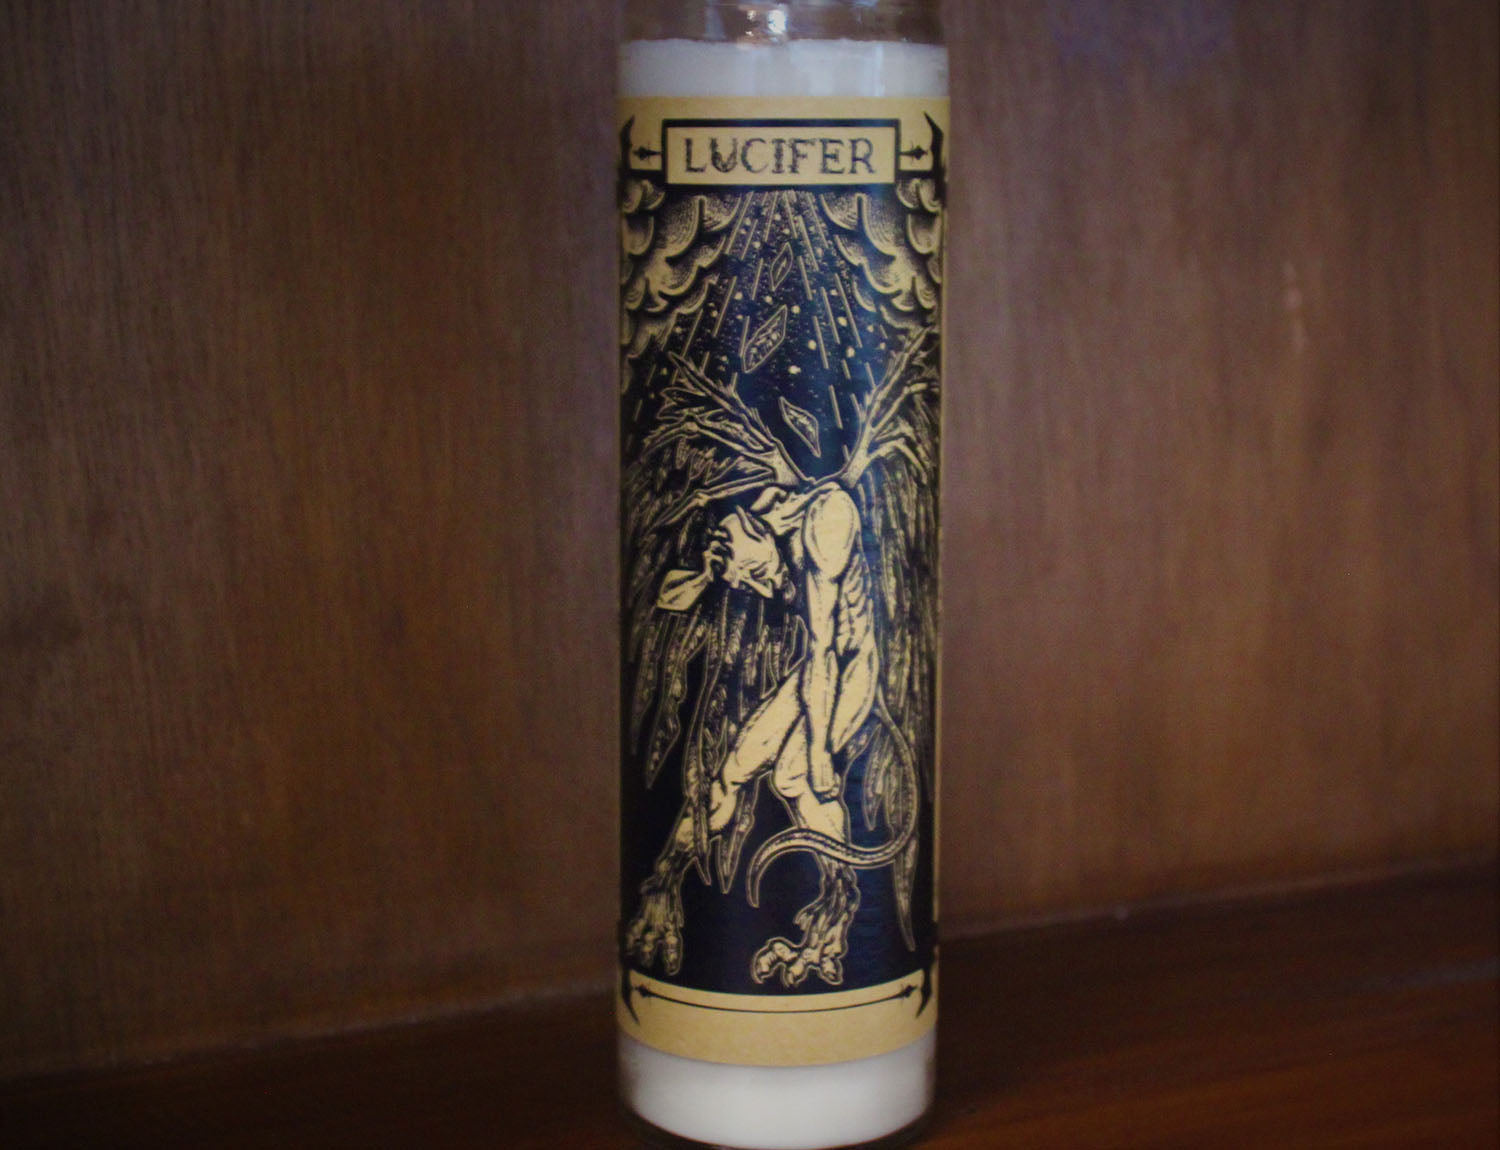 Lucifer, Devotional Candle